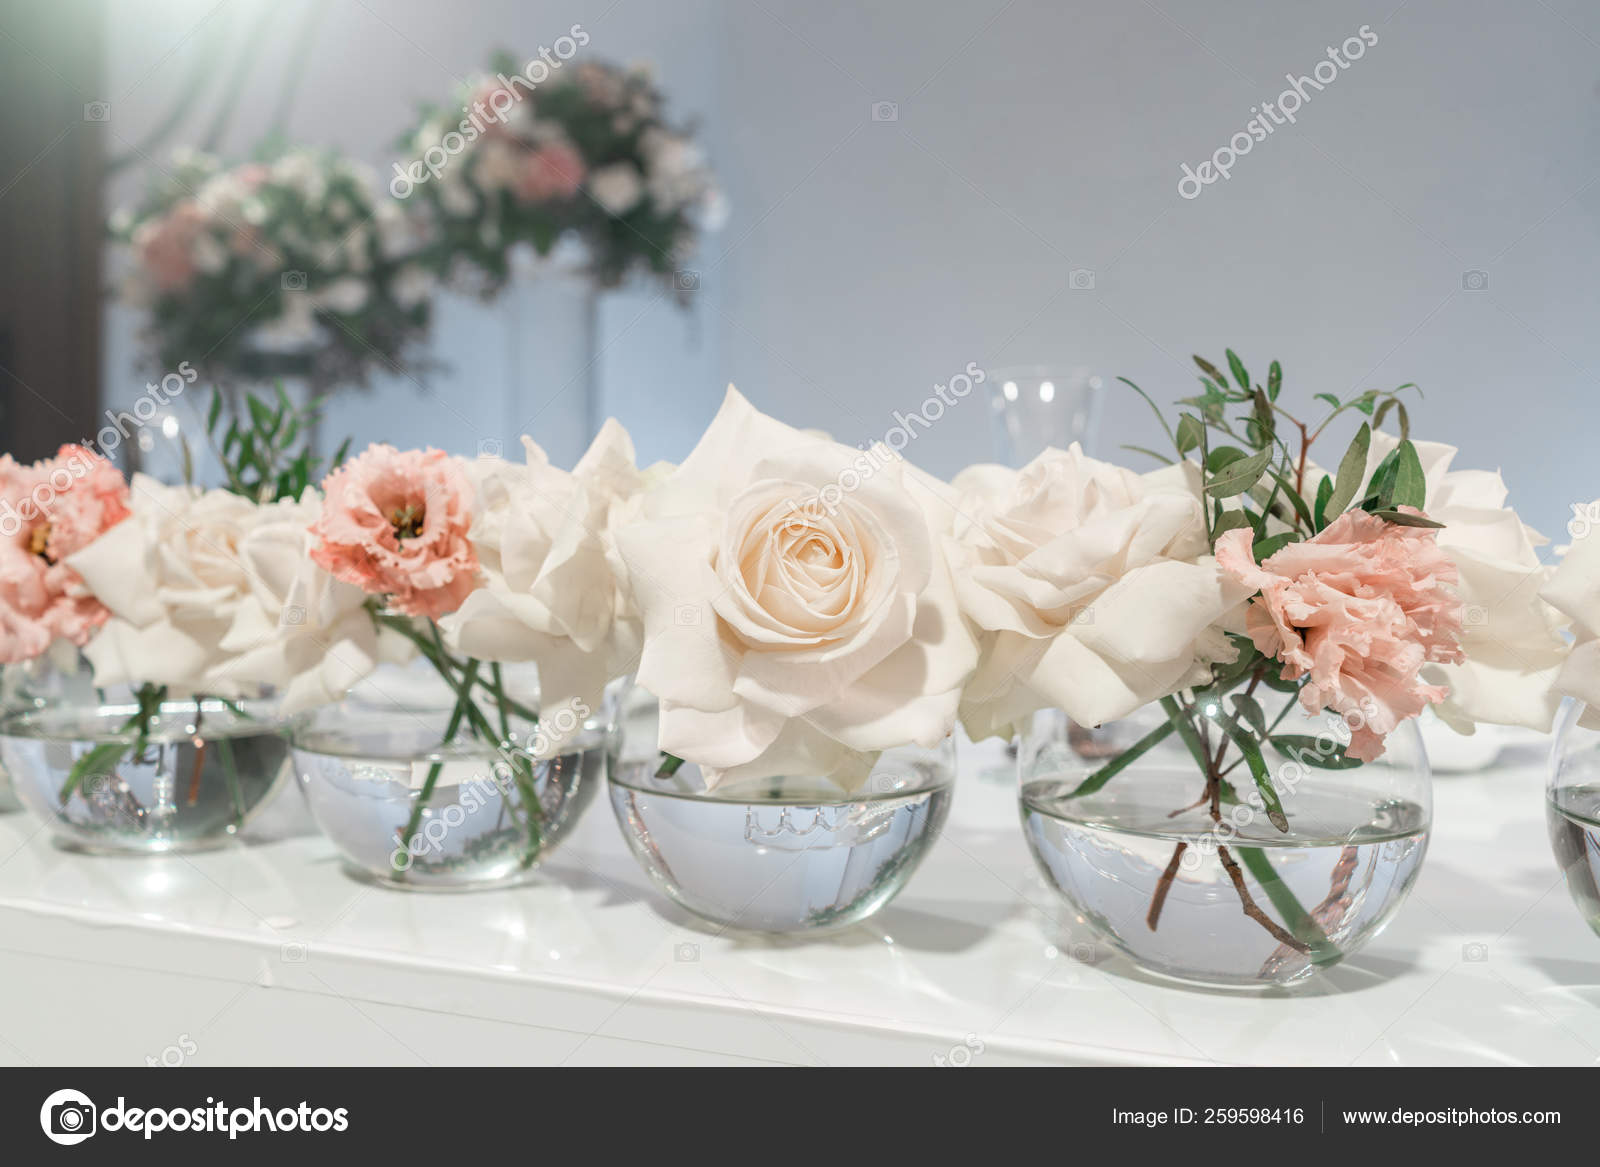 Small Flower Arrangements In Ball Glass Vases The Table Of The Newlyweds Interior Of Restaurant For Wedding Dinner Ready For Guests Catering Concept Stock Photo C Malkovkosta 259598416